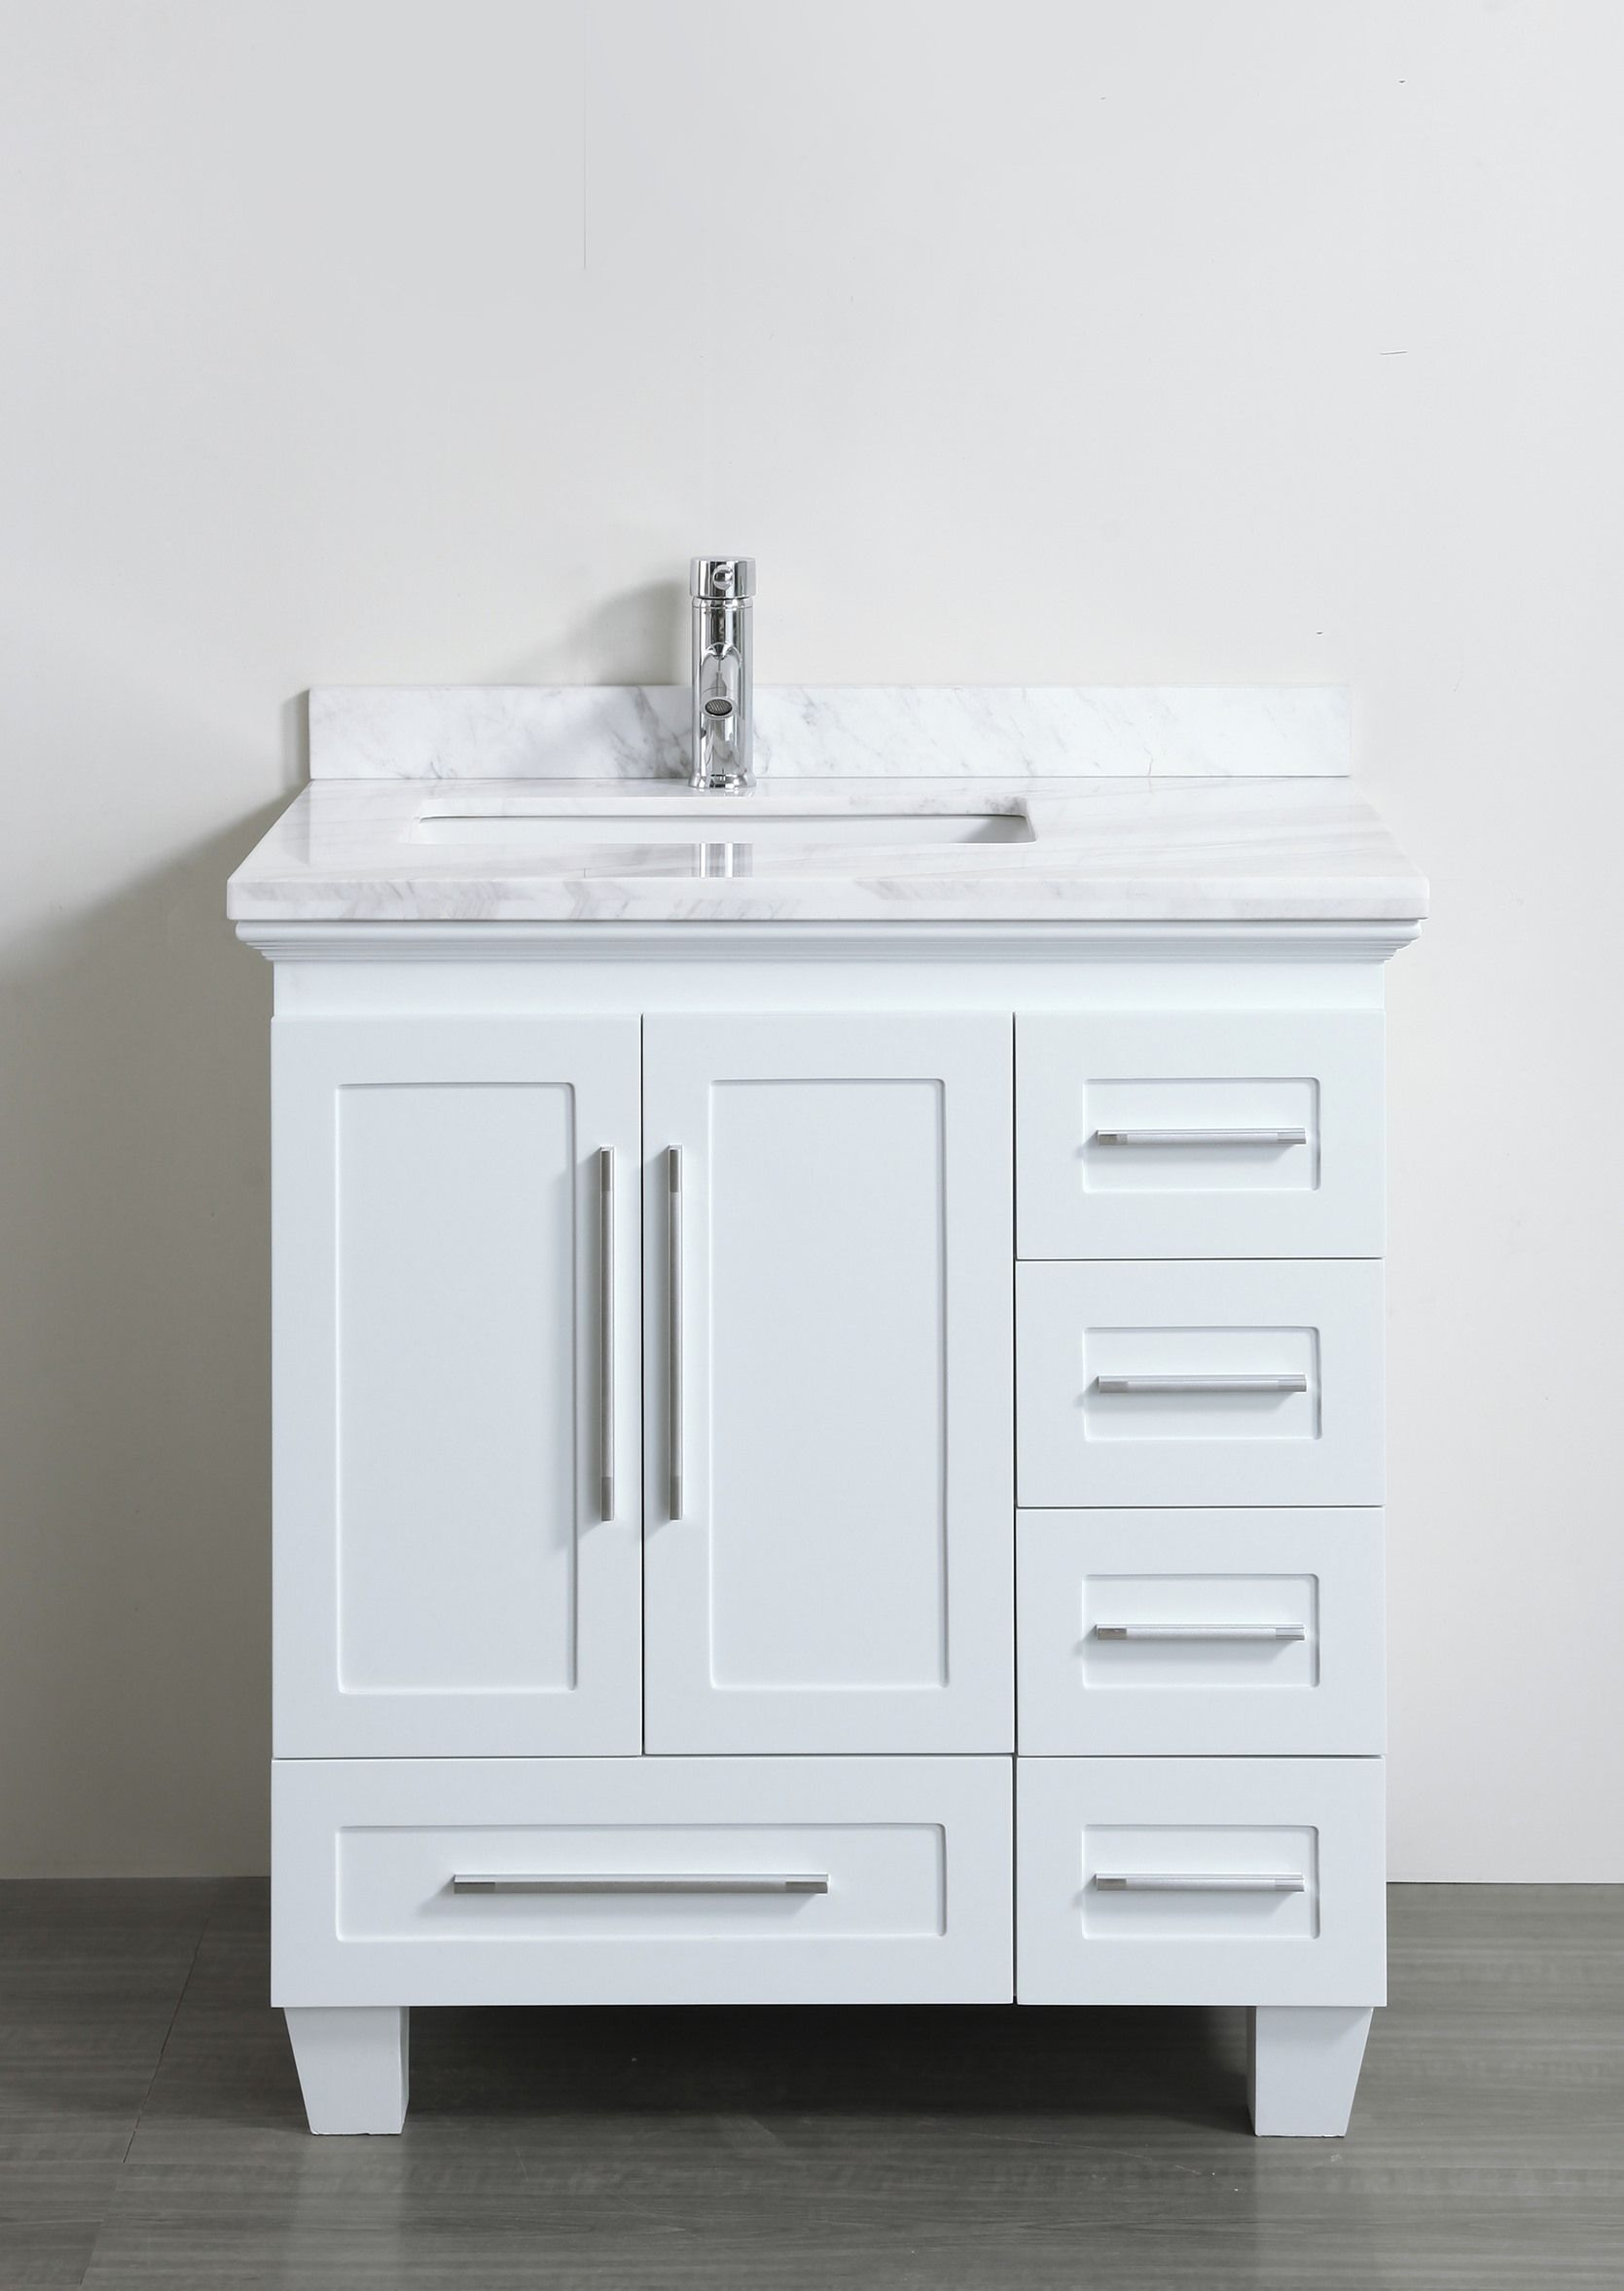 Bathroom Vanities 30 Inch Wide. Accanto Contemporary 30 Inch White Finish Bathroom Vanity Marble Countertop